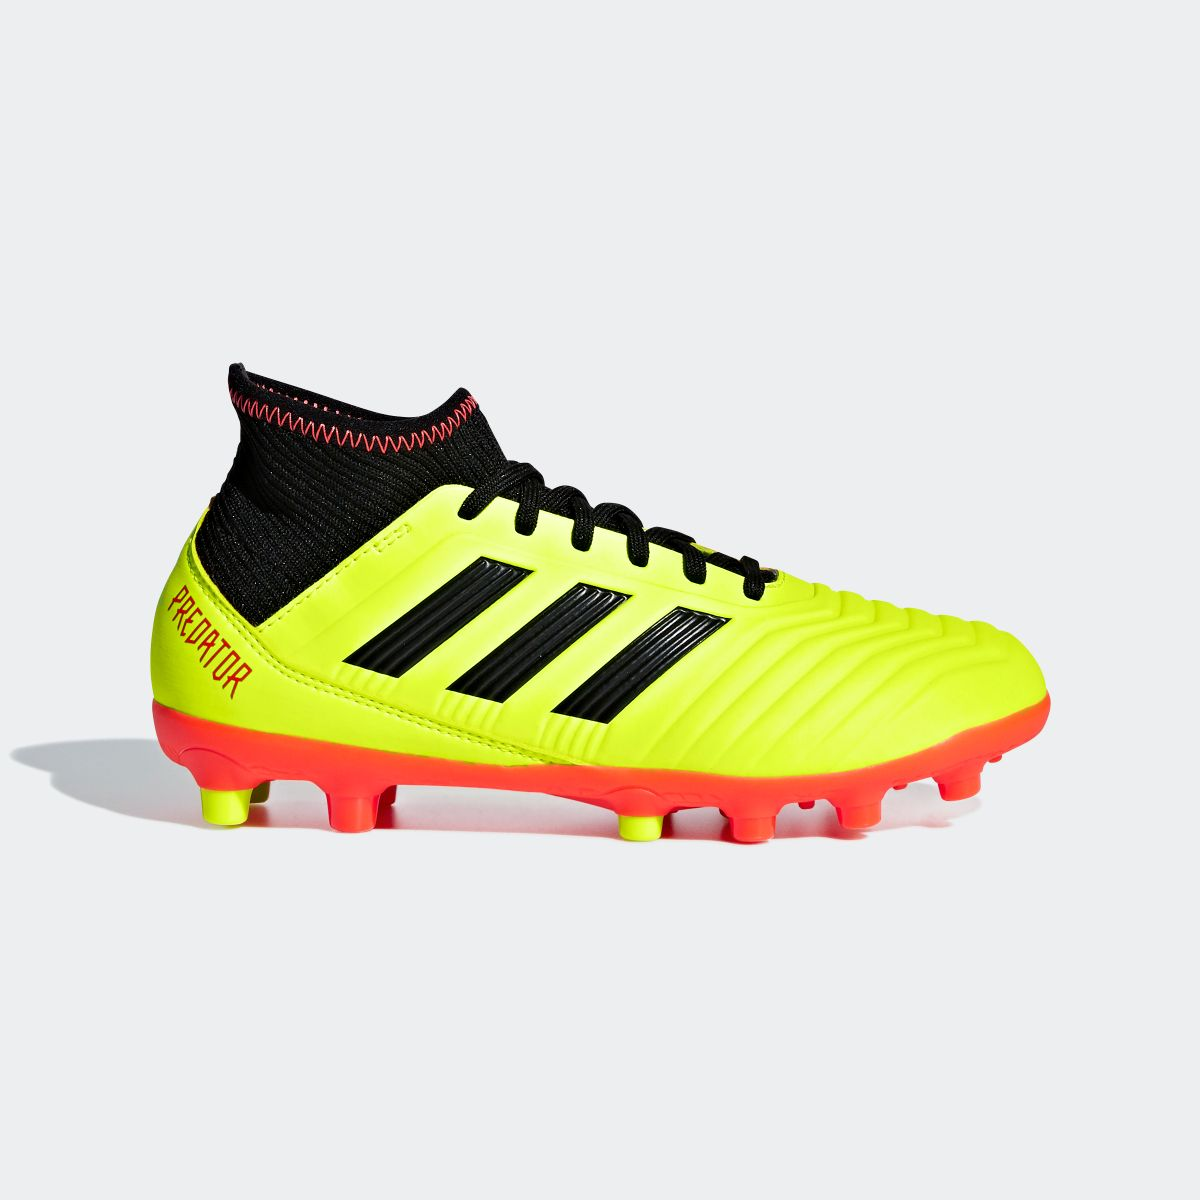 Adidas adidas predator 18.3 Japan HGAG J FIFA World Cup TM signing wearing color kids Boys soccer shoes spikes BB6992